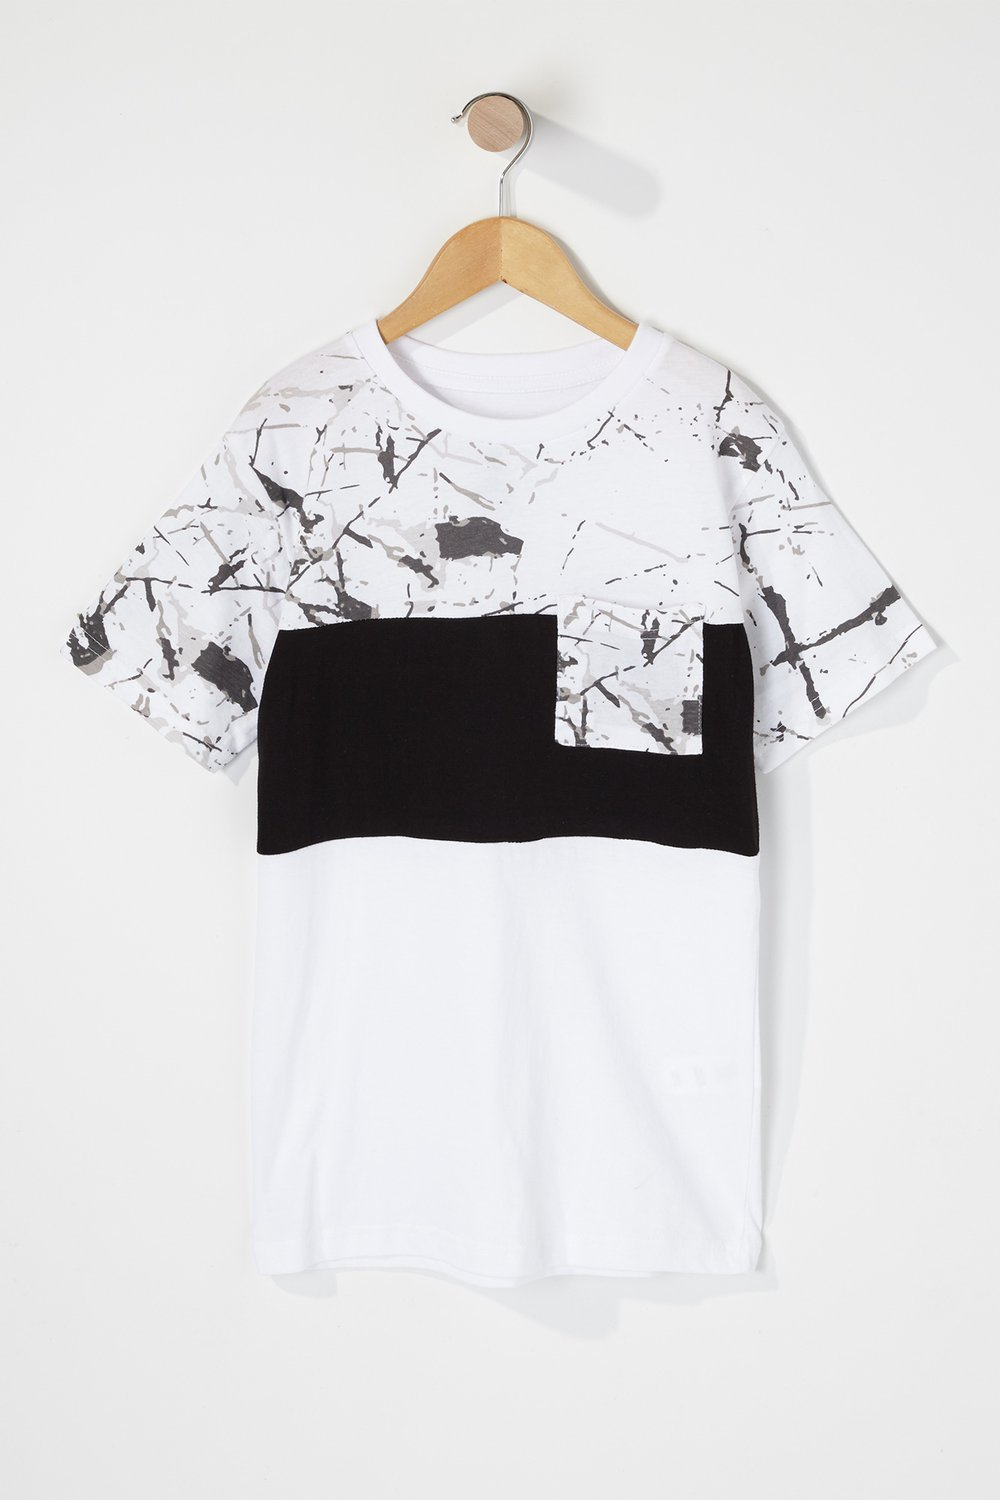 marble shirt